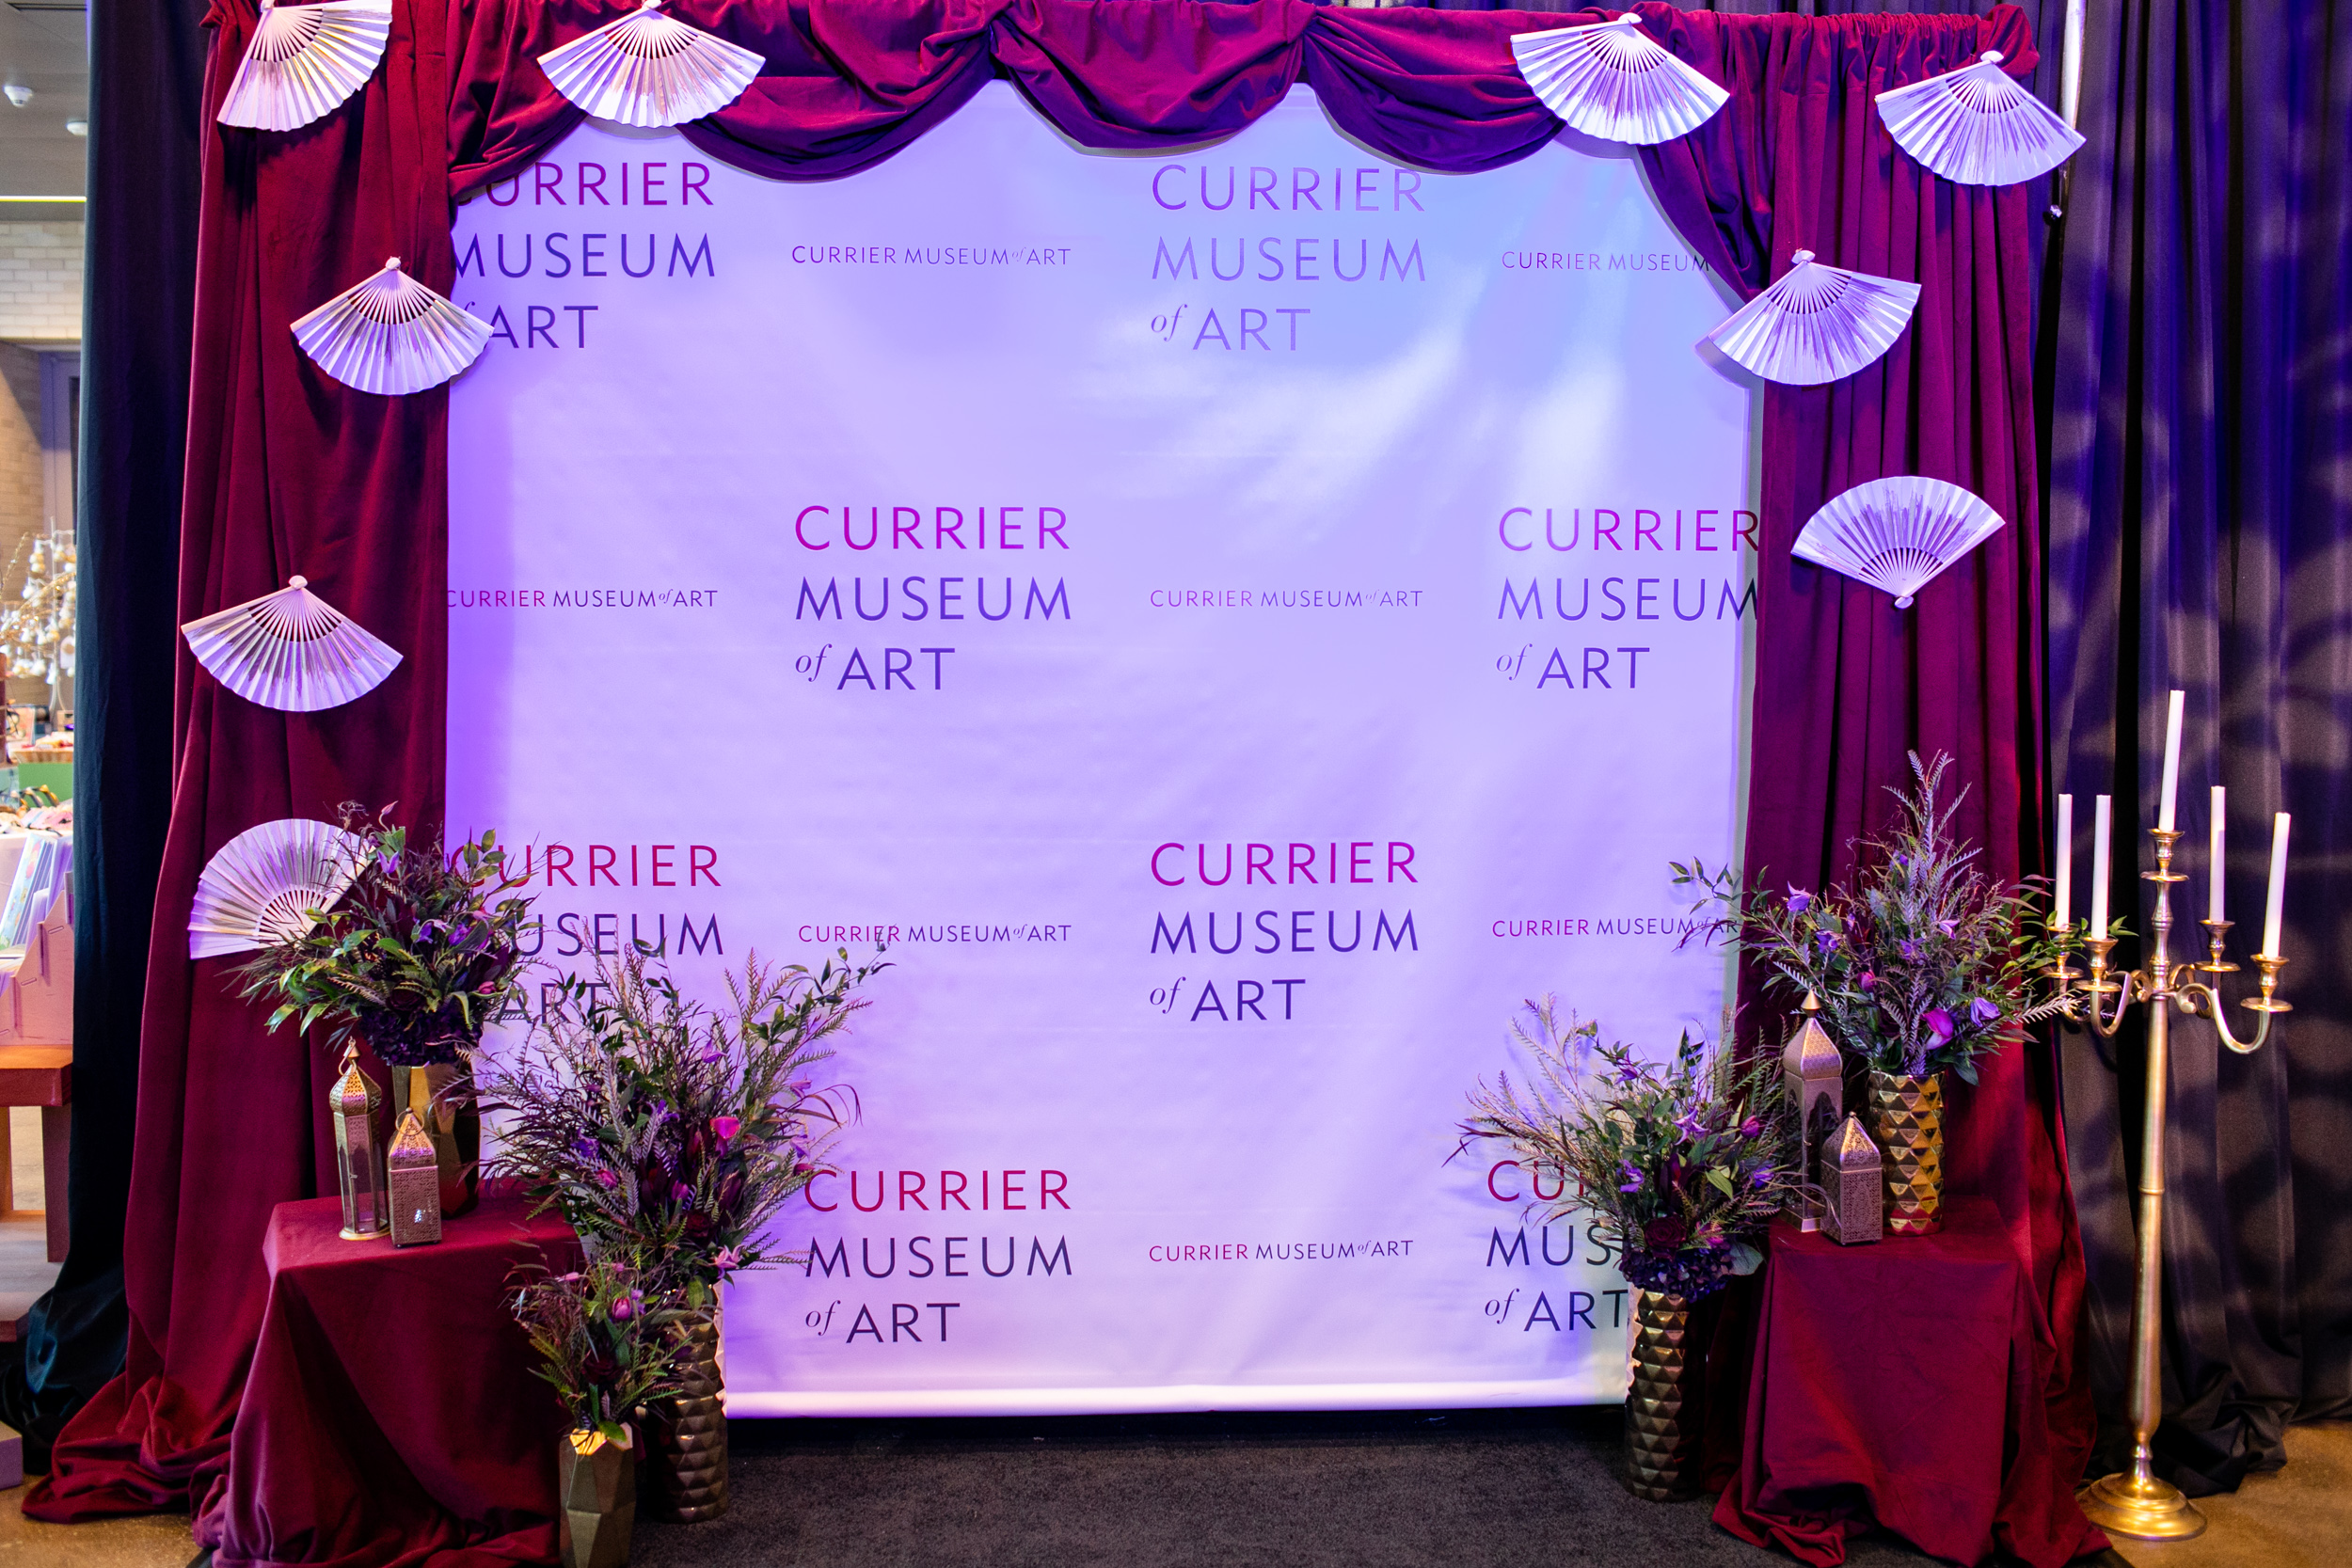 Masquerade_Ball_Currier_Museum_Manchester_Malloy_Events_branding_floral_drape